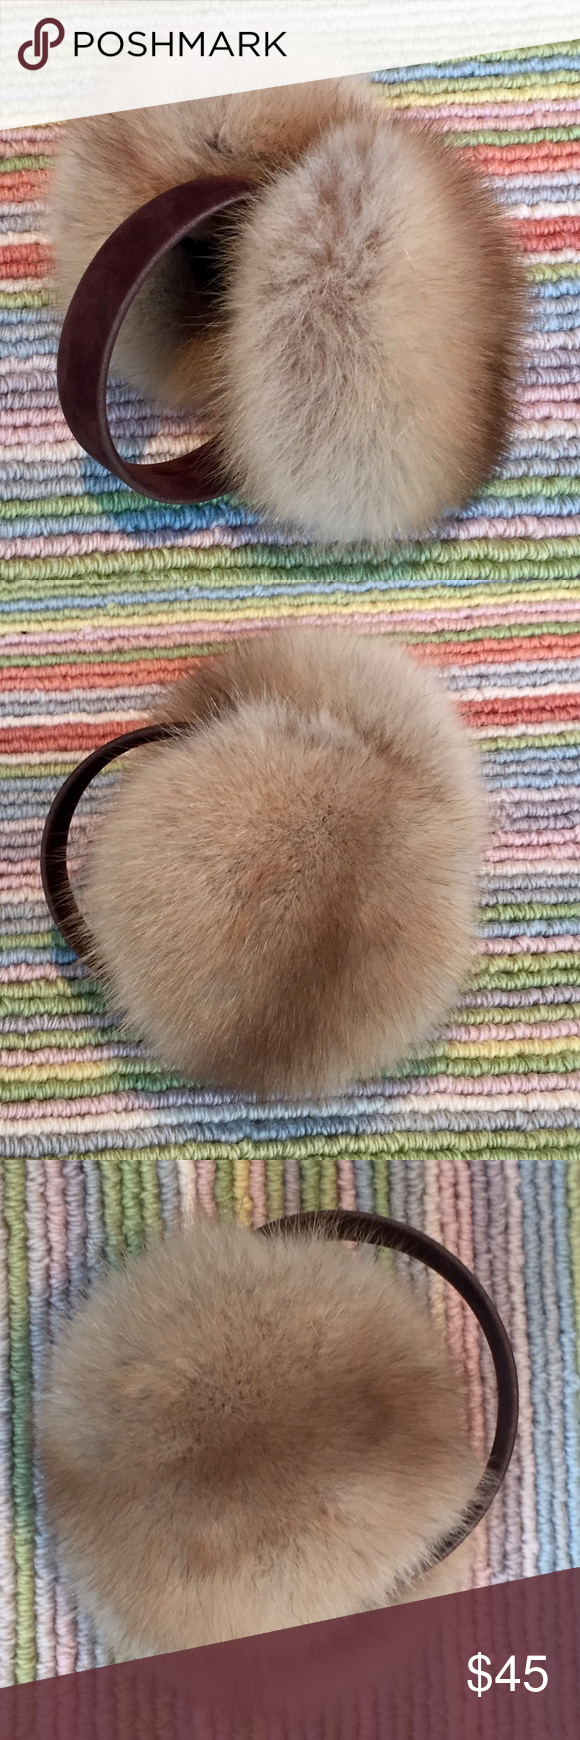 MINK FUR EARMUFFS REAL FURR EAR MUFF Cute and warm earmuffs.  Real mink fur.  No label. Has been removed. Accessories Hats